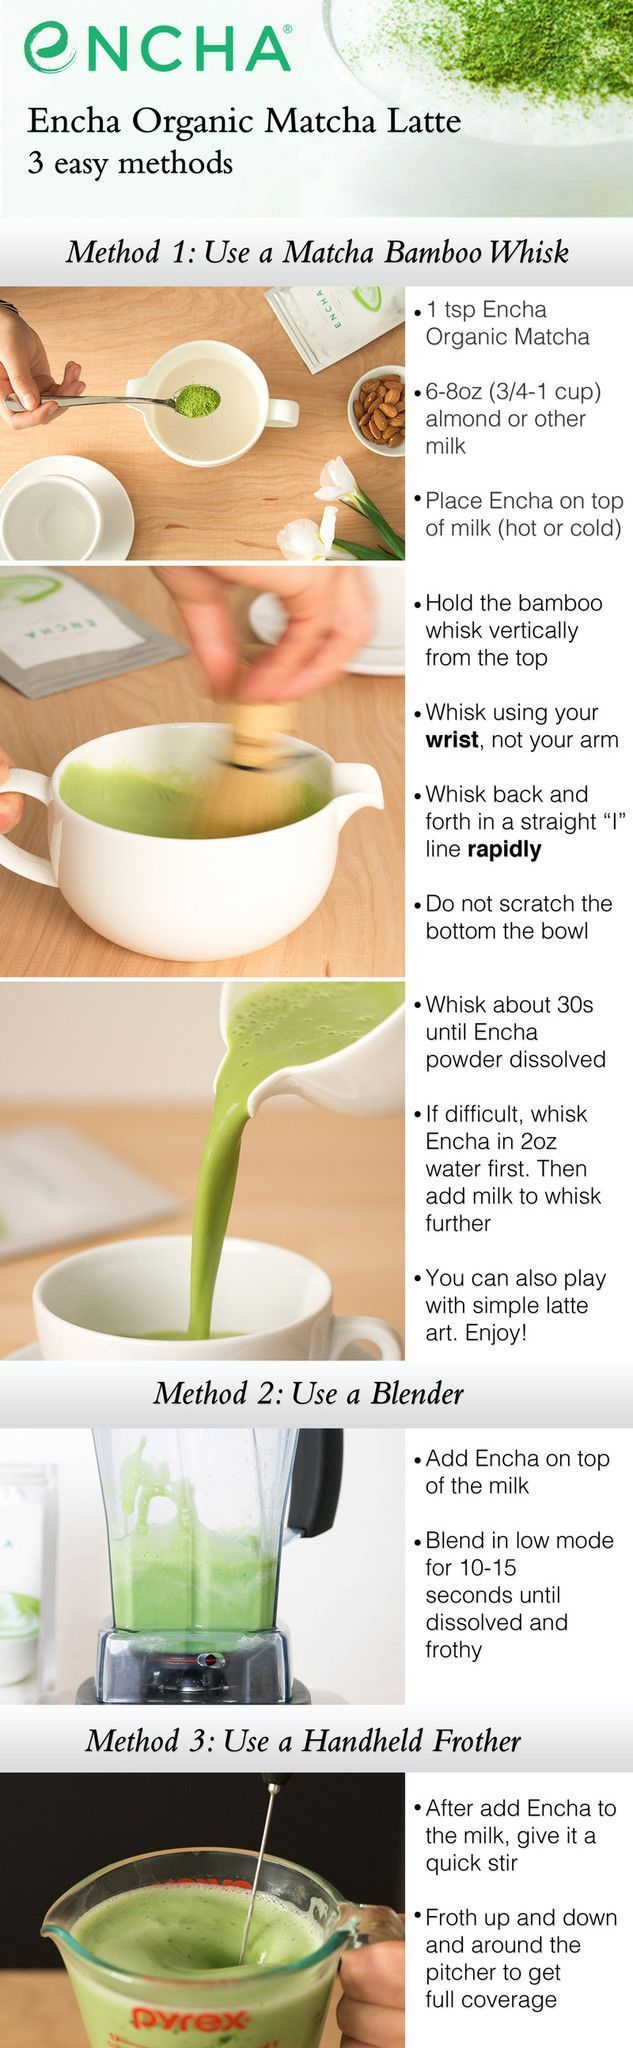 3 Methods of Making Matcha Latte DIY instruction using a bamboo whisk, blender or handheld milk frother with Encha Organic #matcha   Find more stuff: www.victoriasbestmatchatea.com